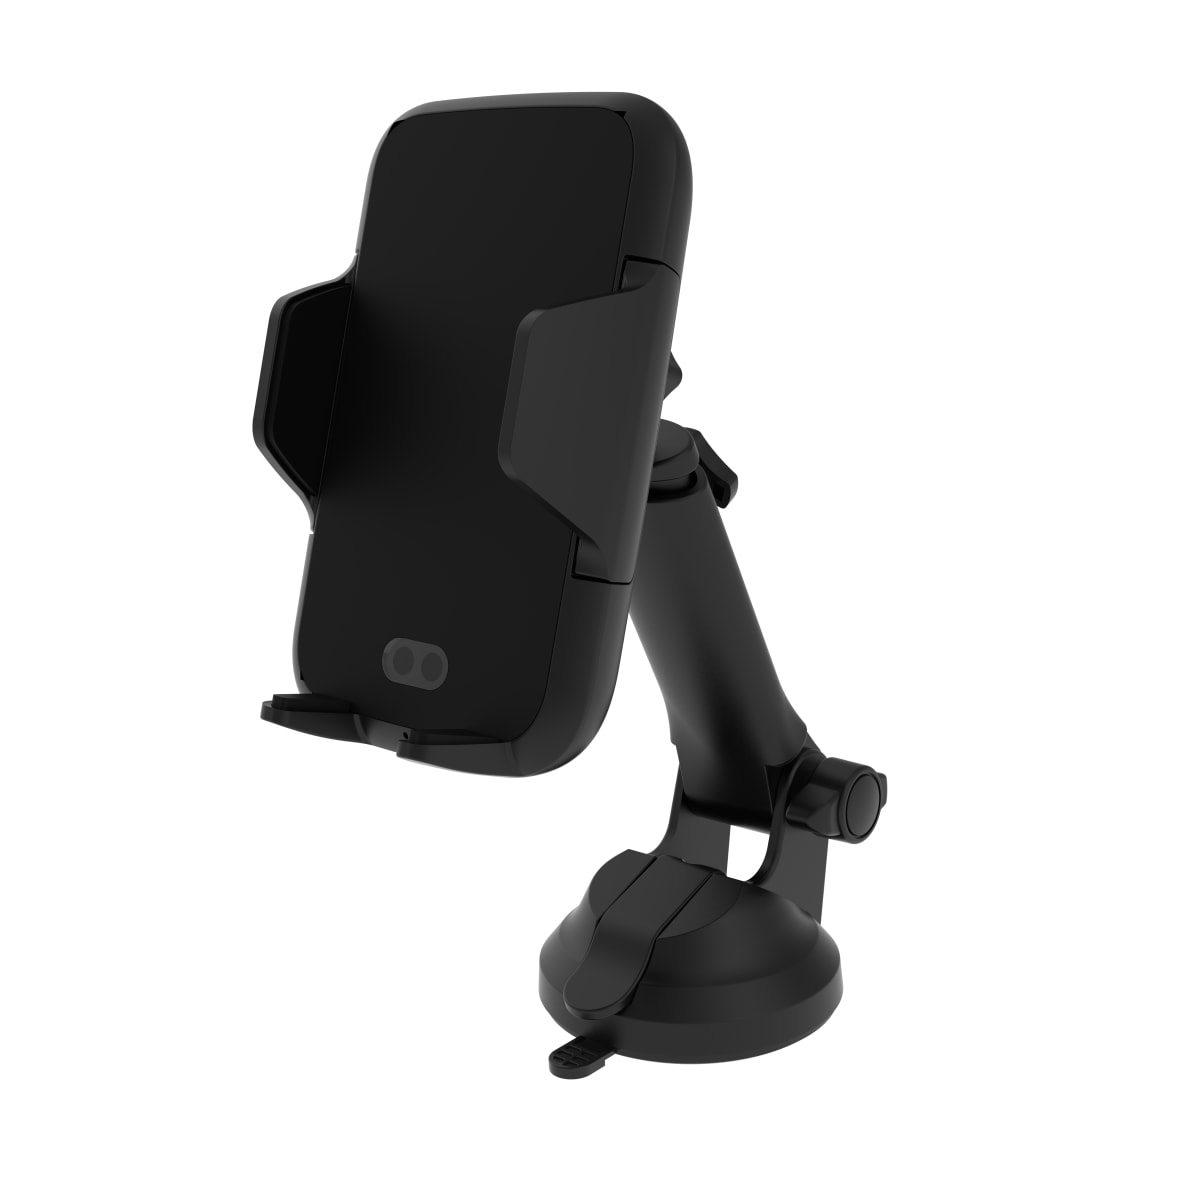 Motorised suction cup and air-vent grid jaw holder